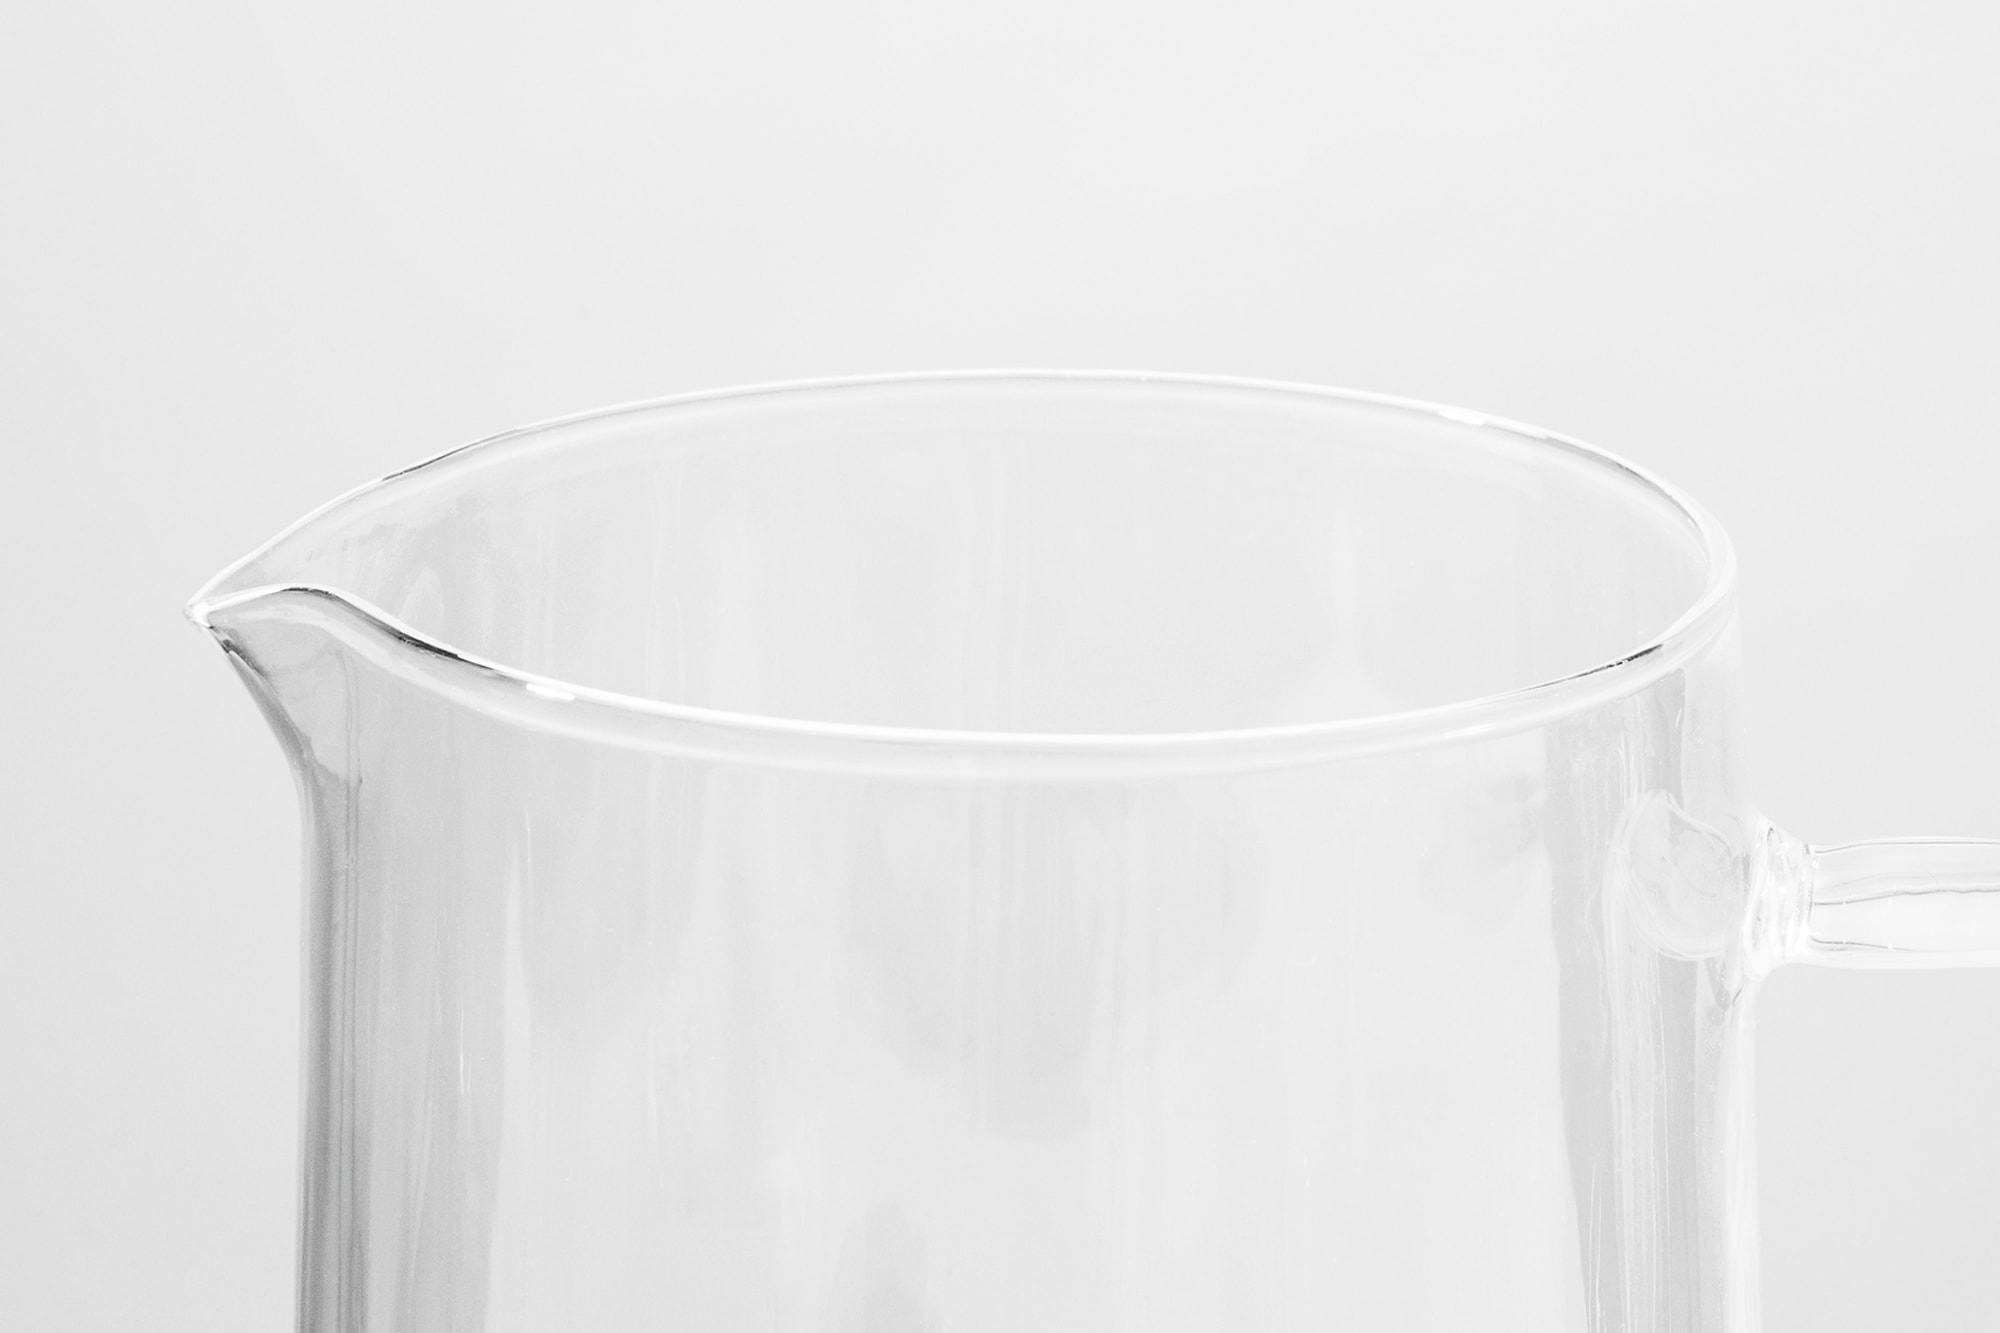 Close up view of the top of the Rivington Glassware jug